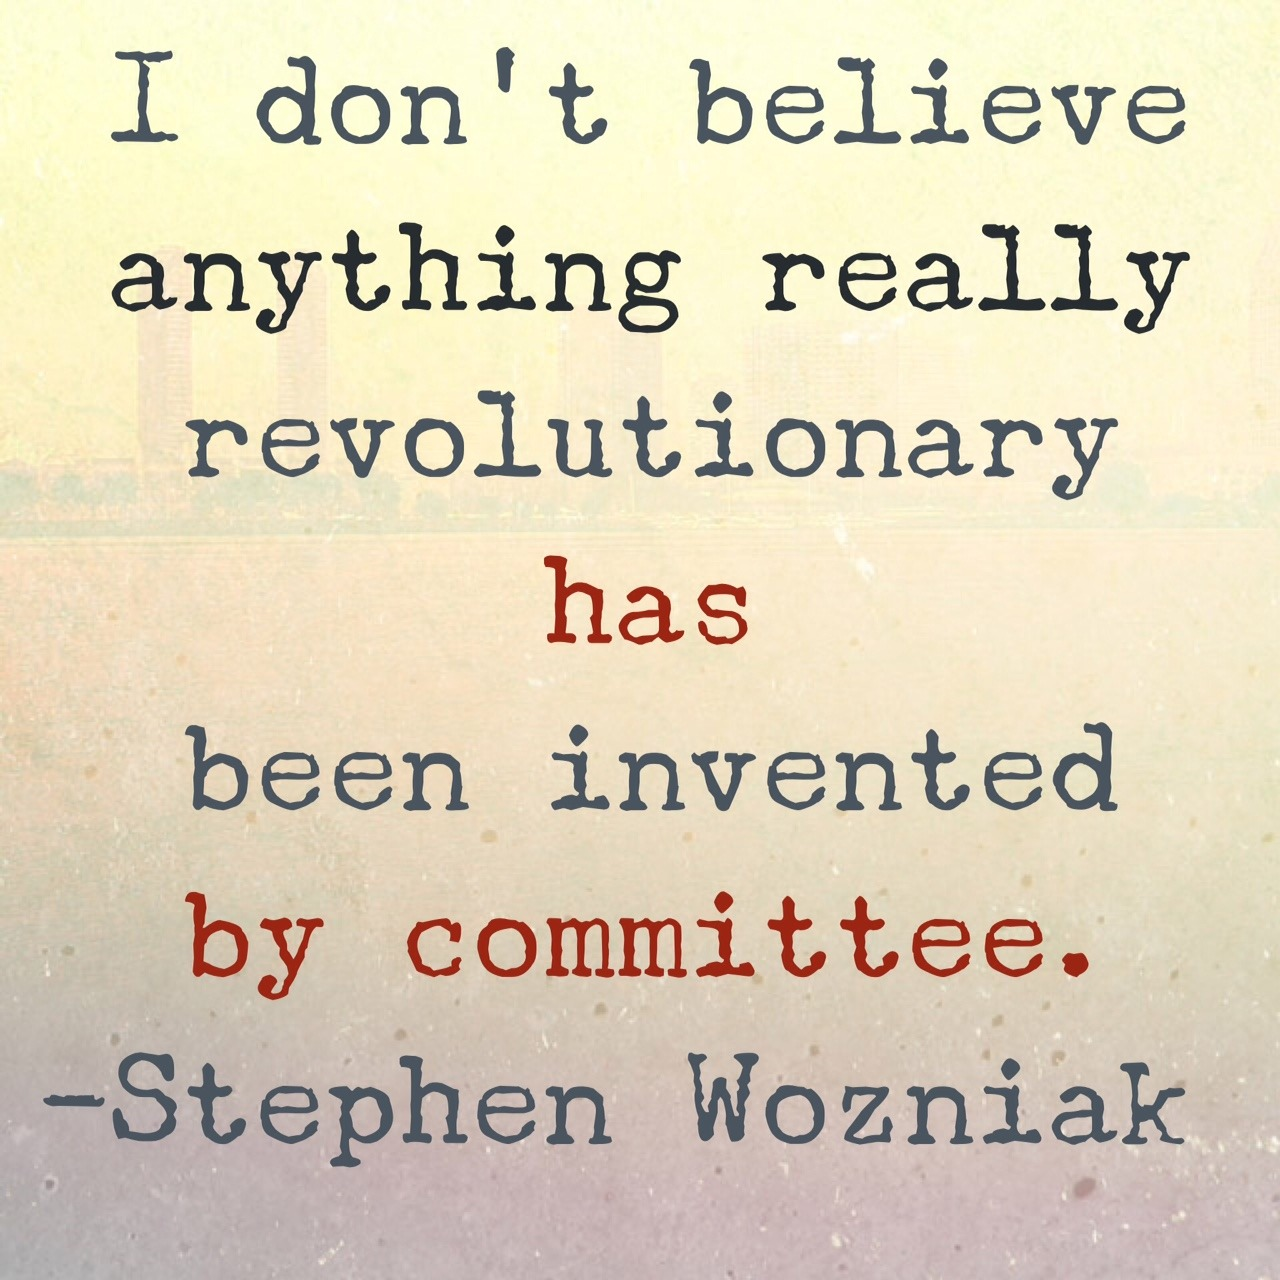 I don't believe anything really revolutionary has been invented by committee. - Stephen Wozniak